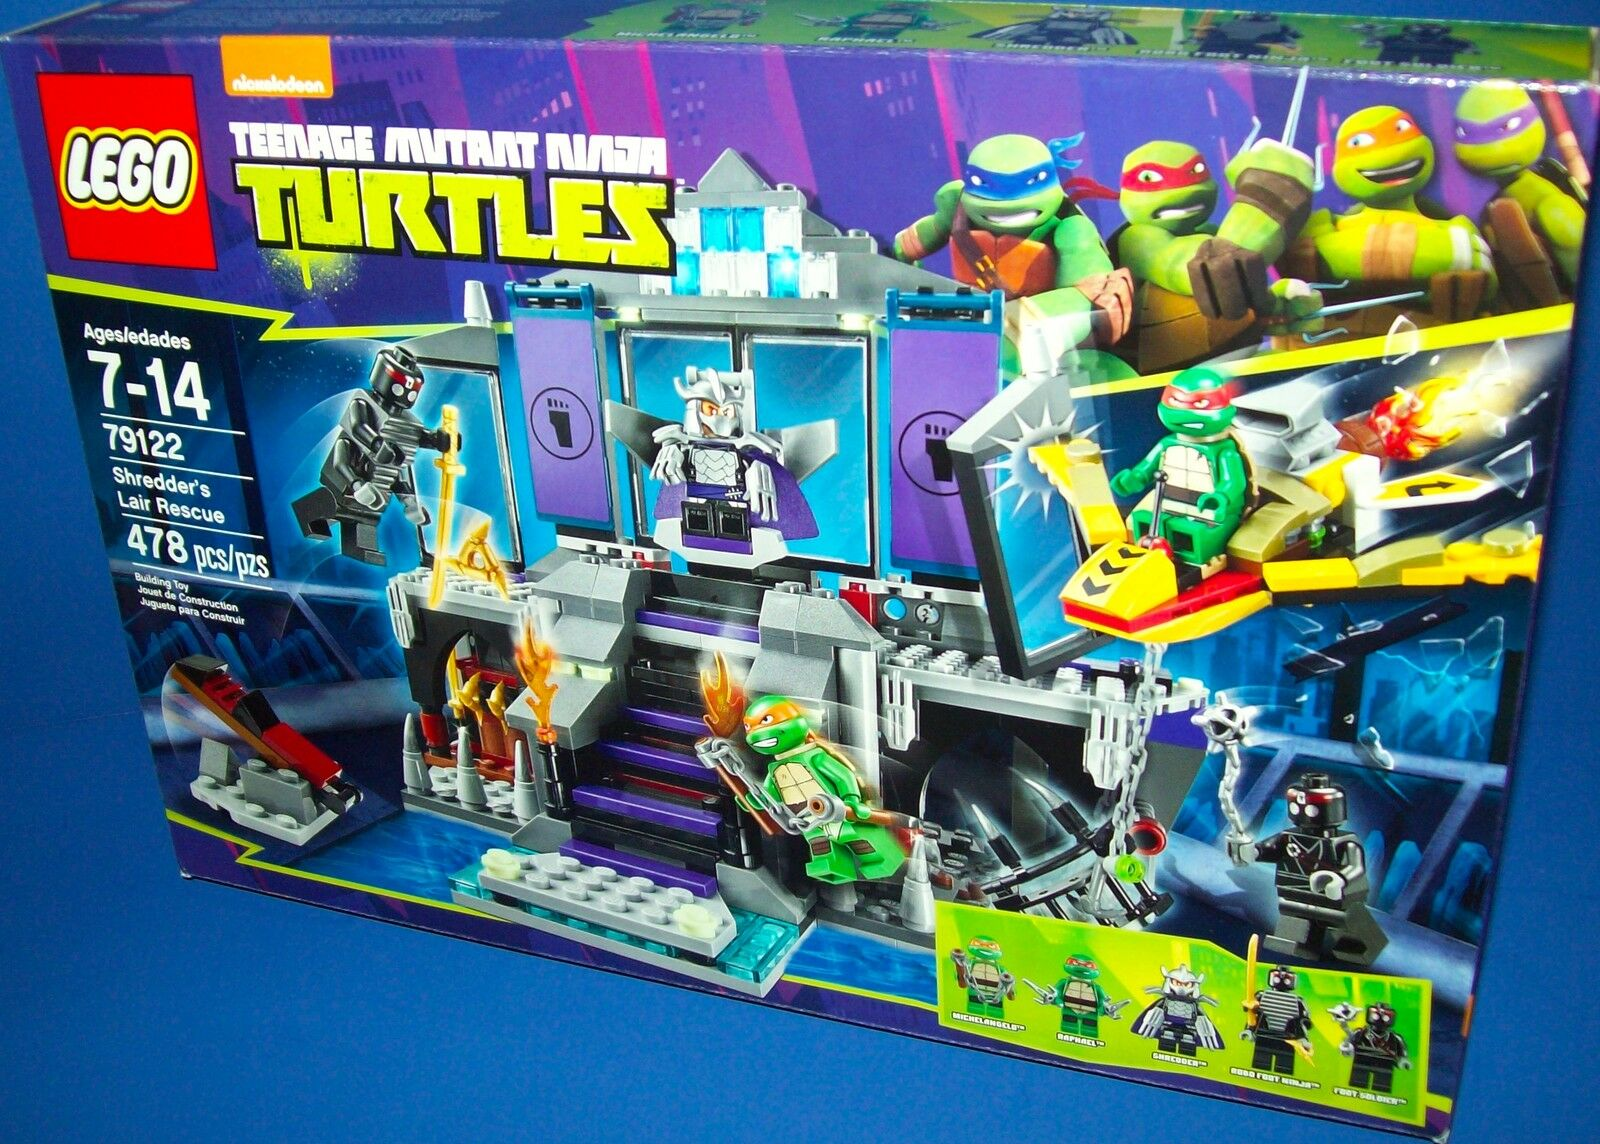 Lego 79122 Shrougeder's Lair Rescue  TMNT  Teenage  Mutant Ninja Turtles  retraité Neuf dans sa boîte  économisez 60% de réduction et expédition rapide dans le monde entier